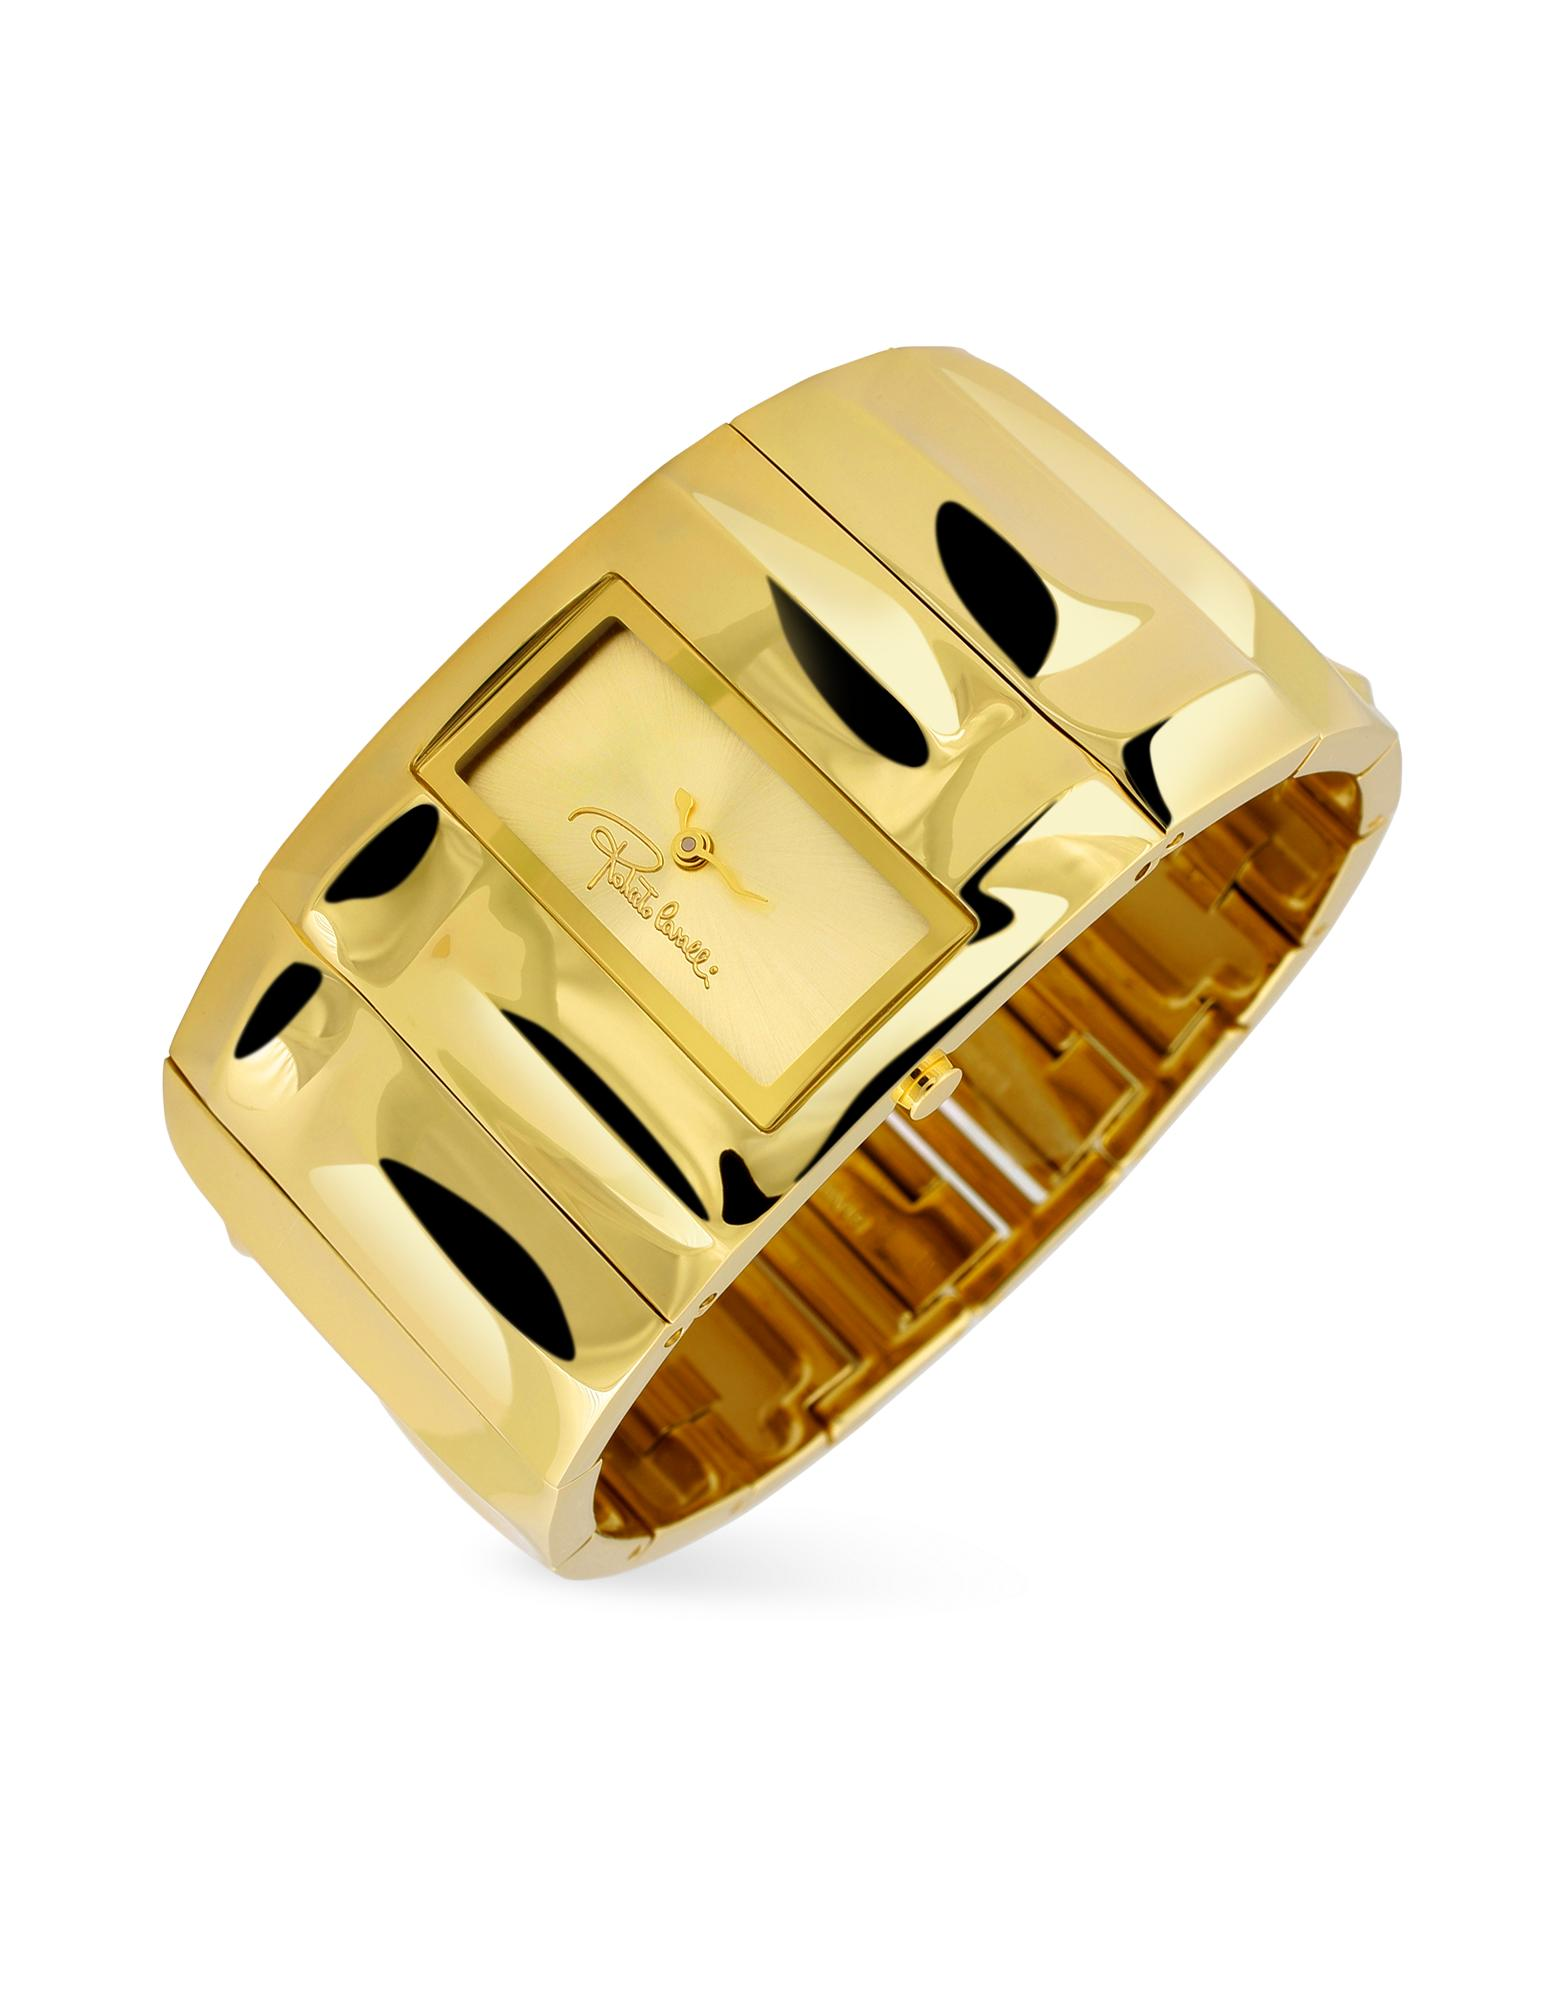 Roberto Cavalli Croco Tail - Gold Plated Cuff Bracelet Watch